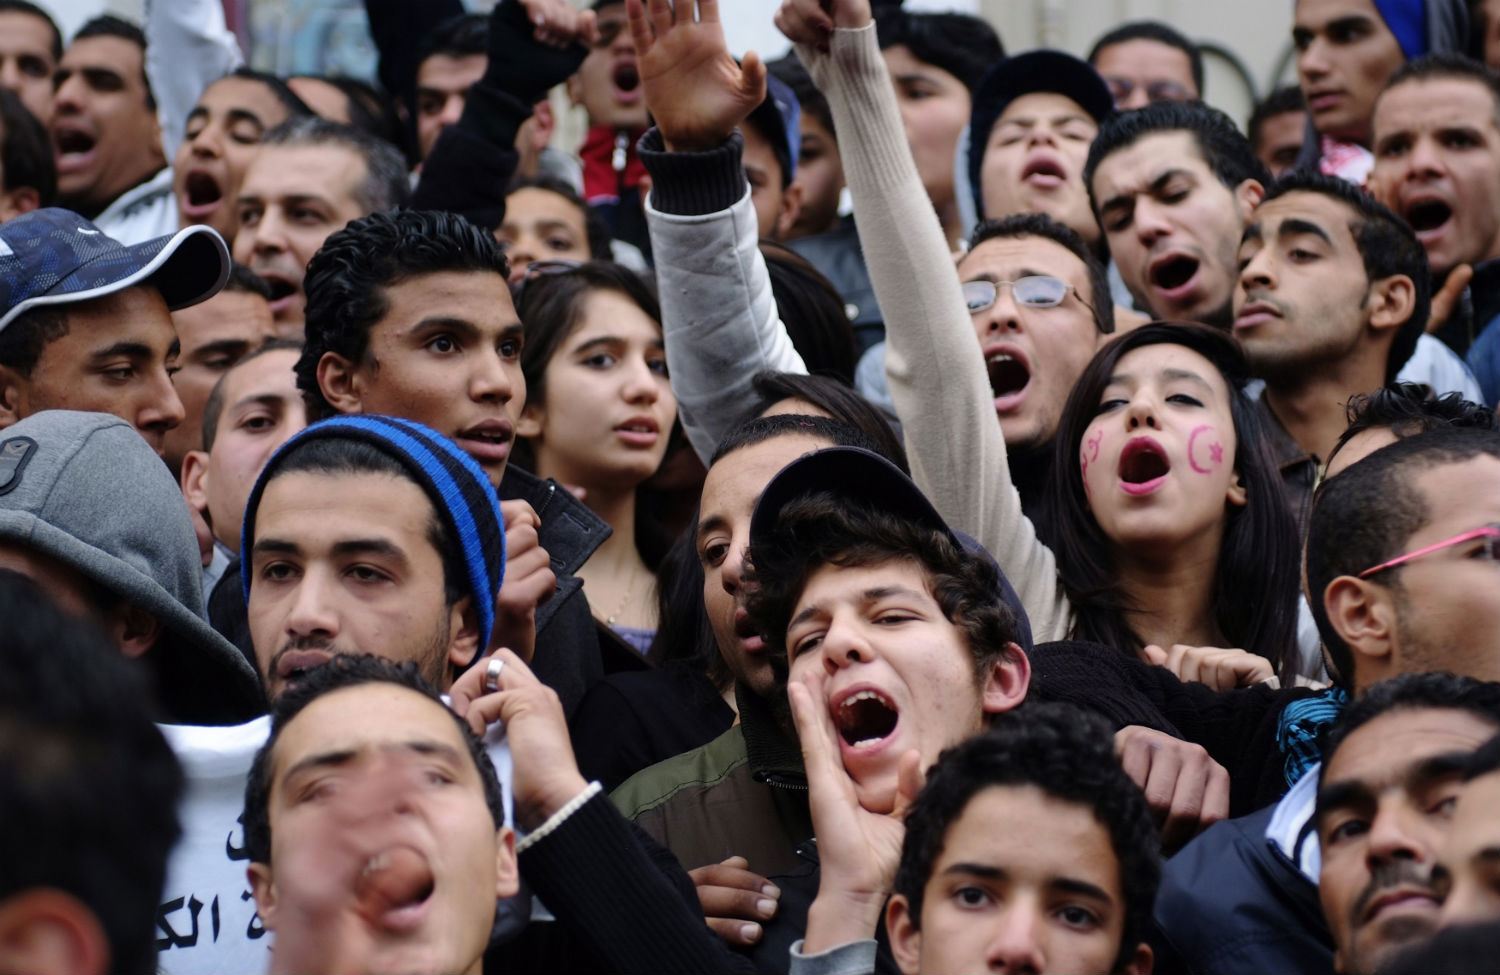 Tunisians-celebrate-the-first-year-anniversary-of-the-revolution-that-started-the-Arab-Spring-in-January-2012.-ReutersAnis-Mili